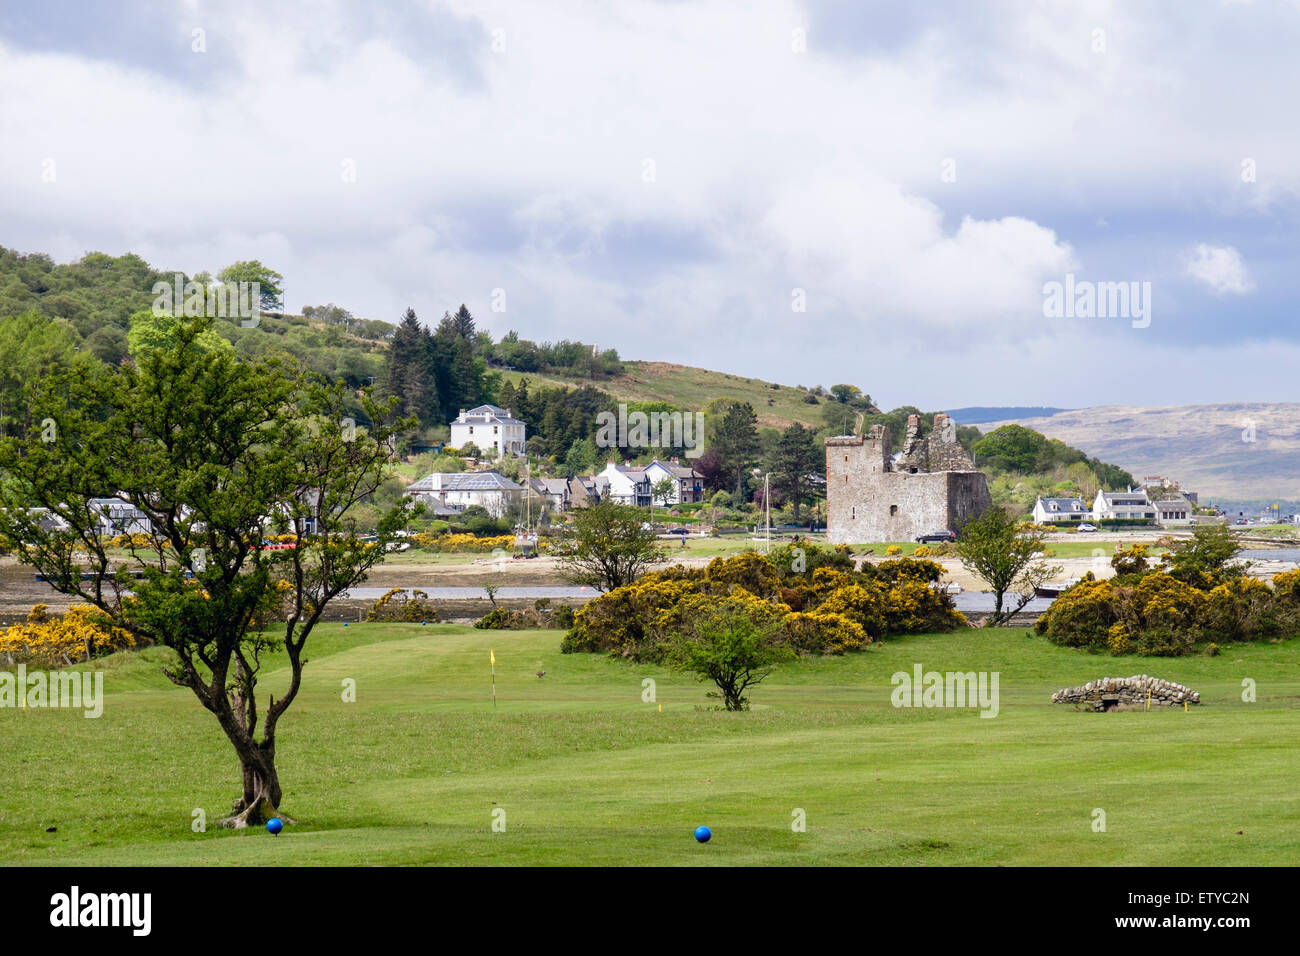 View across golf course to village and castle ruins in Lochranza, Isle of Arran North Ayrshire Western Isles Scotland - Stock Image